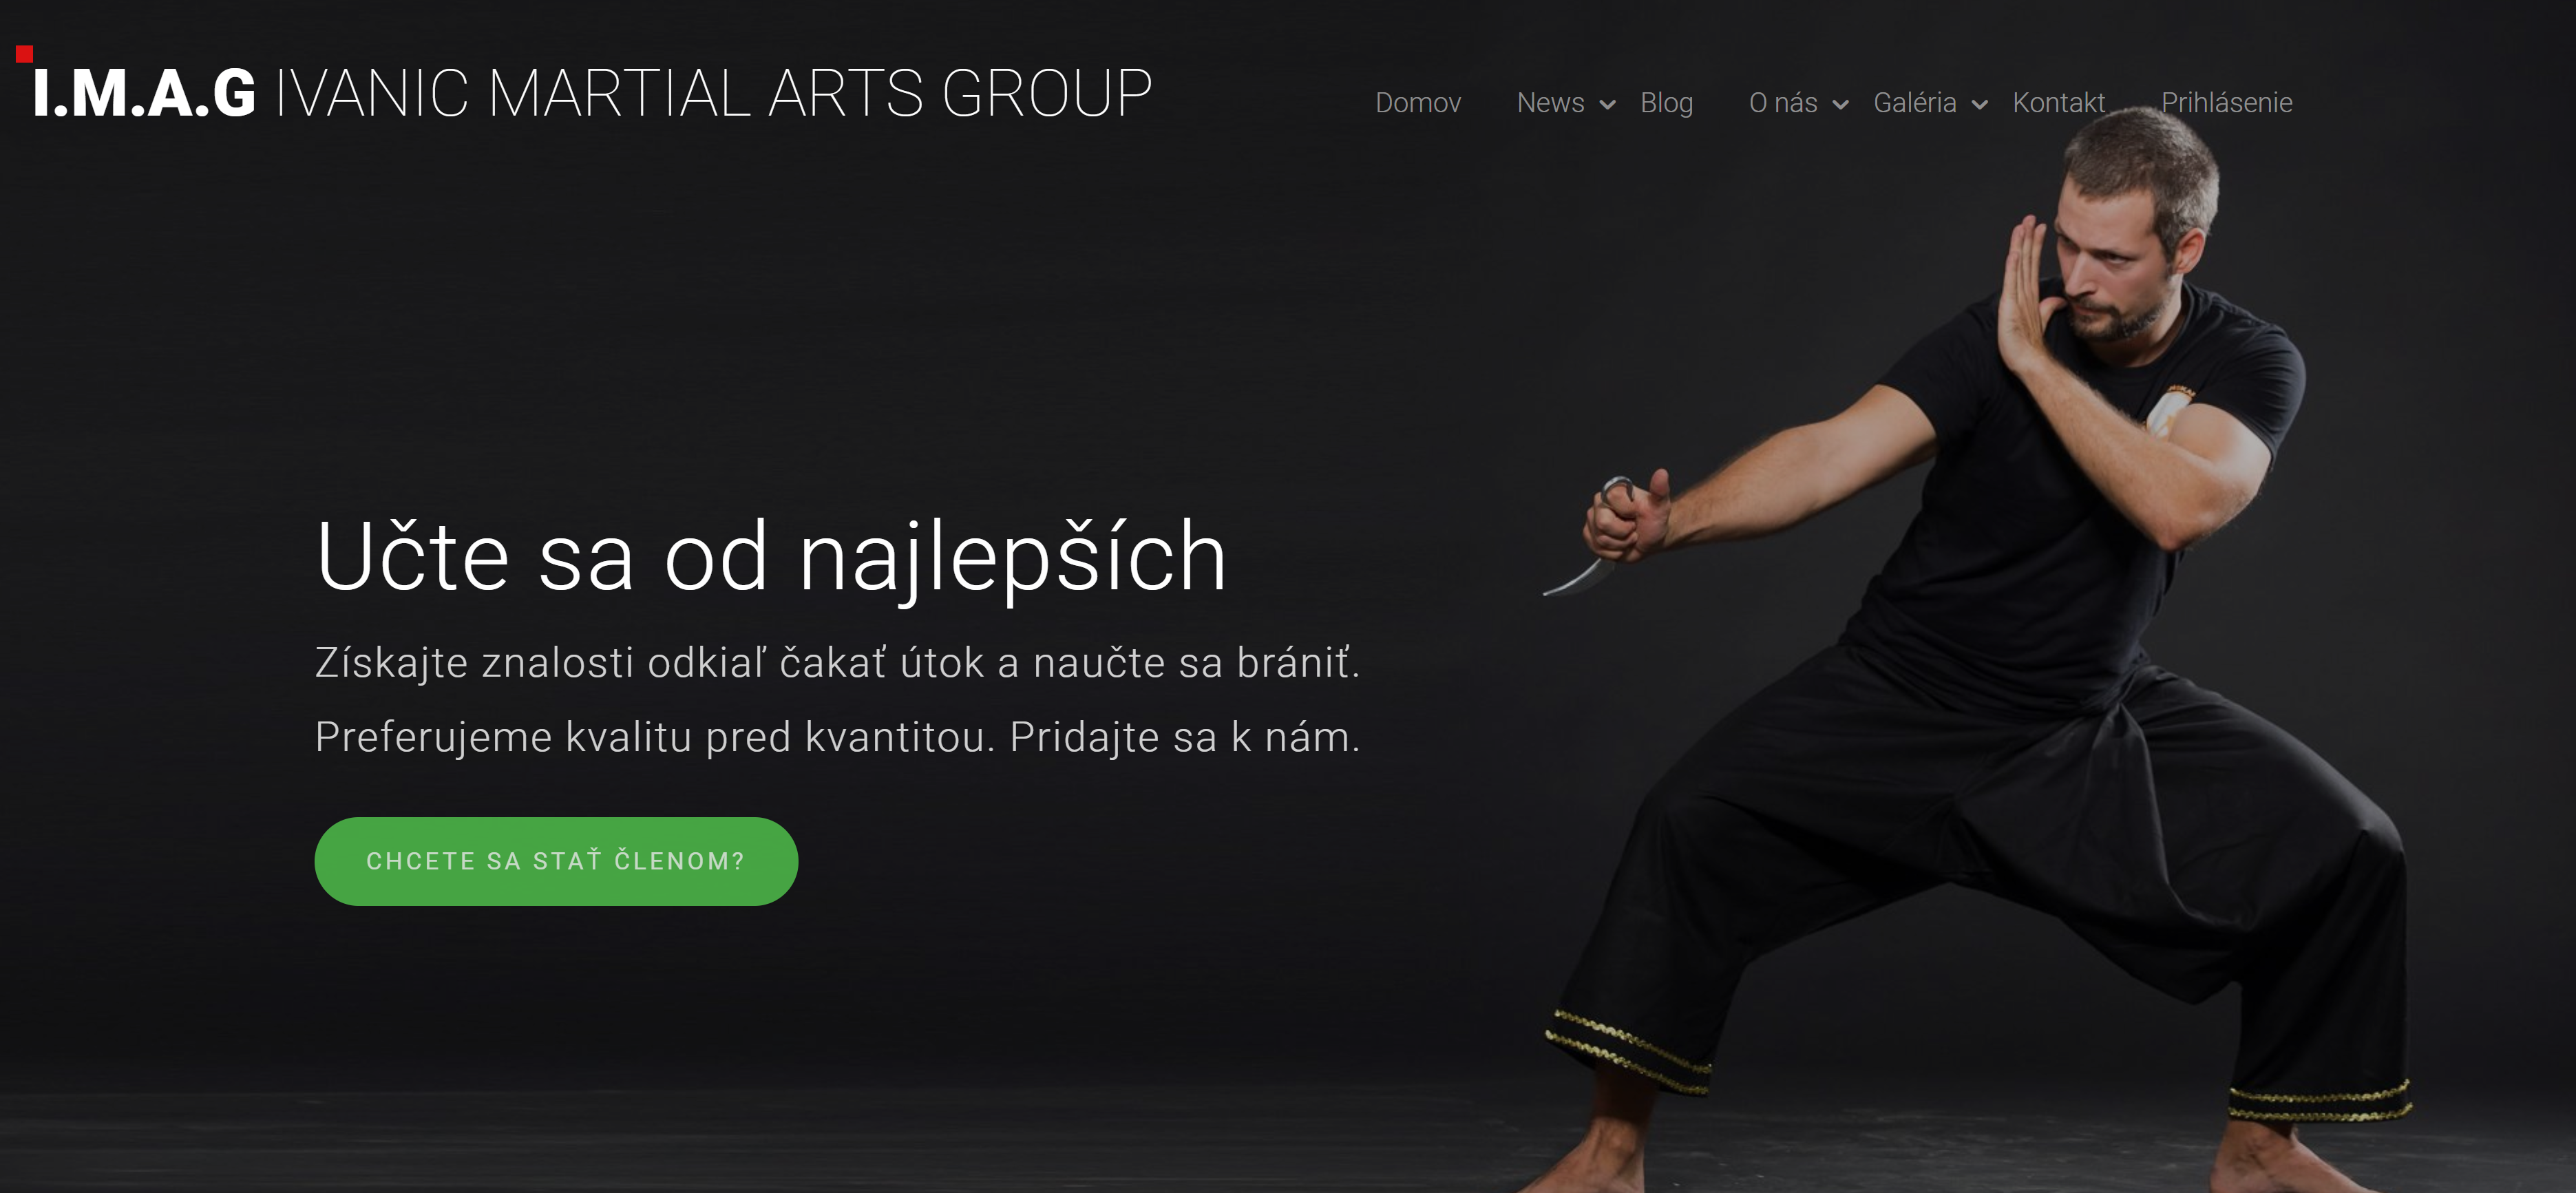 Ivanic Martial Arts Group